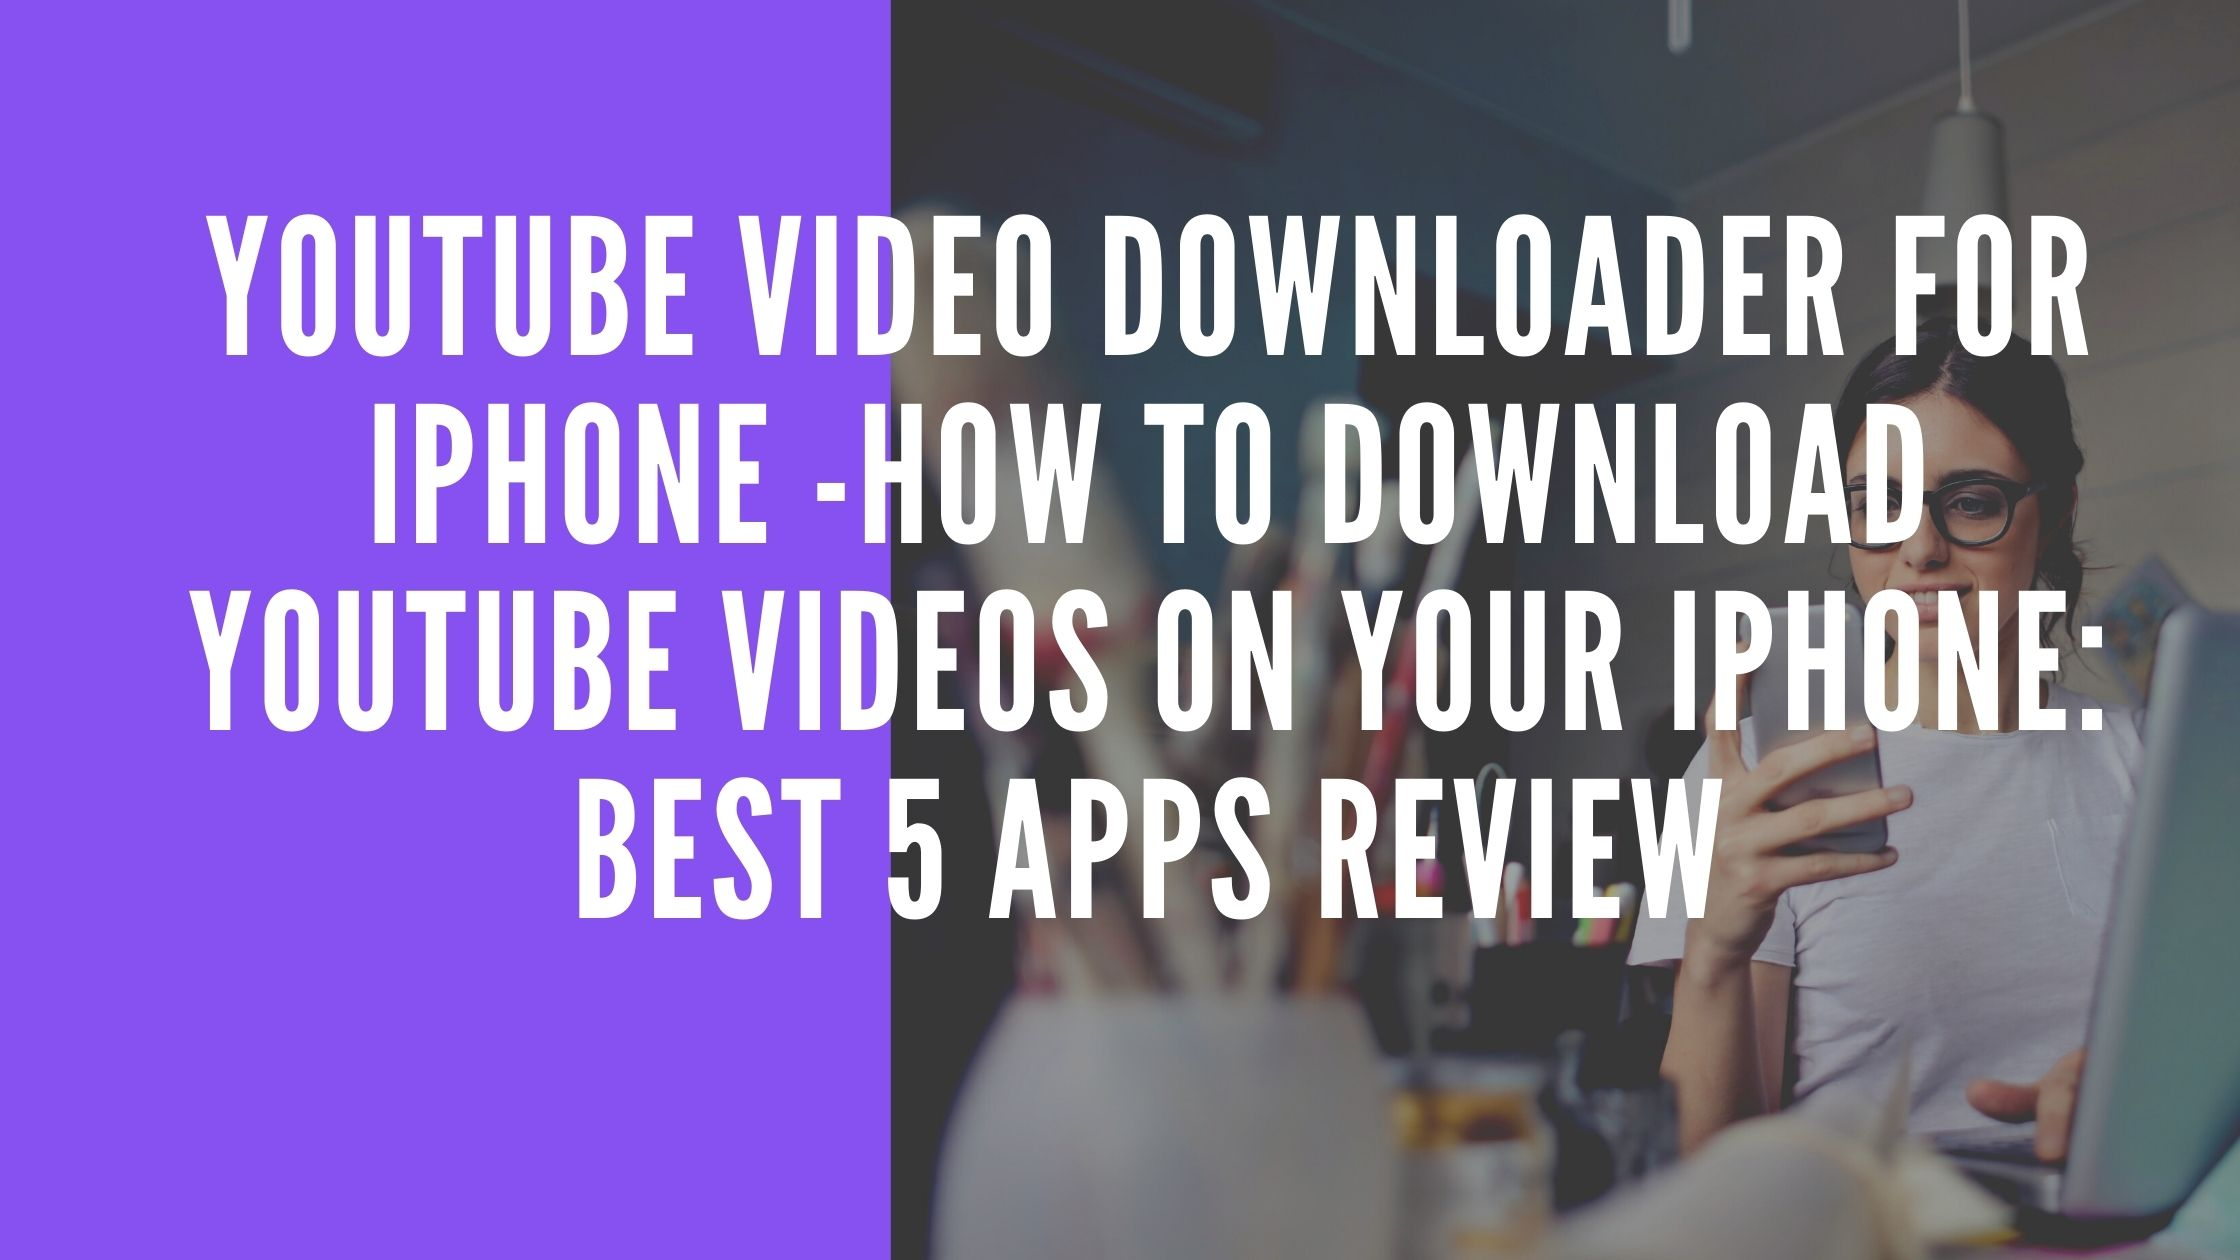 YouTube Video Downloader for iPhone -How to Download YouTube Videos on Your iPhone: Best 5 Apps Review